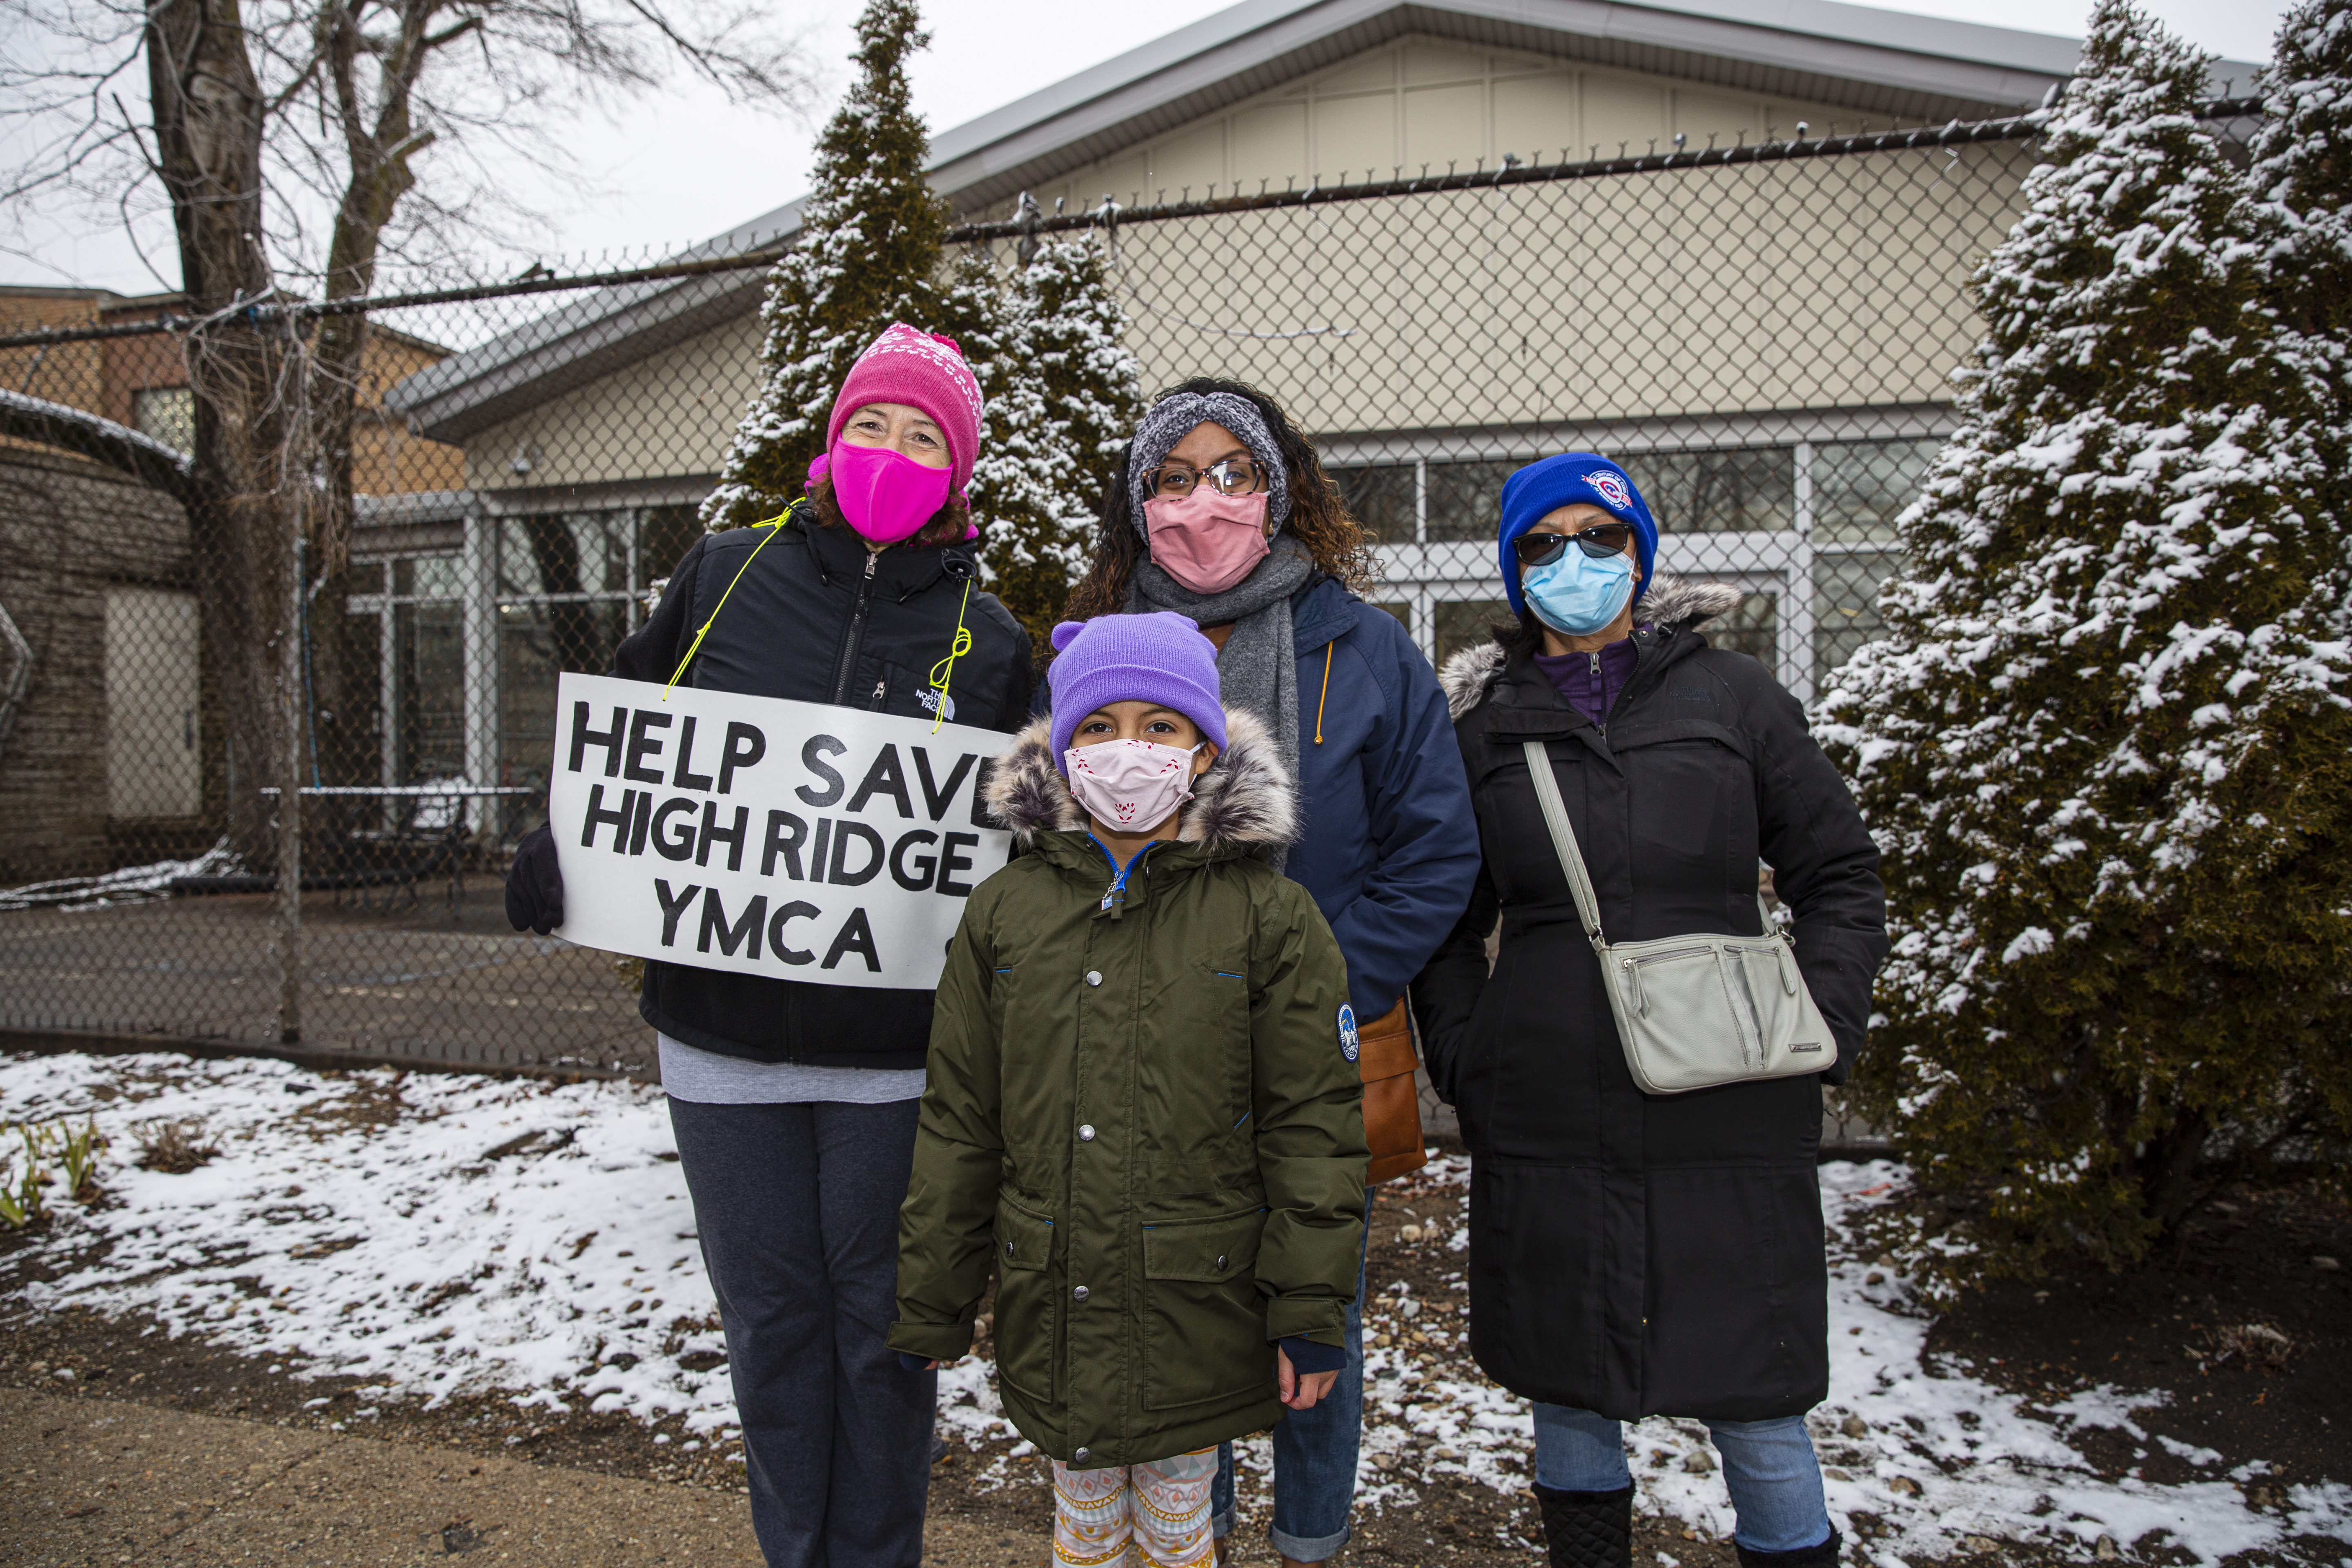 From left to right, Laurie Sneed, Reyna Walk-Faust, Rogelia Guerrero protest the closure of the High Ridge YMCA at 2424 W. Touhy Ave. in West Rogers Park. , Sunday, Jan. 17, 2021.